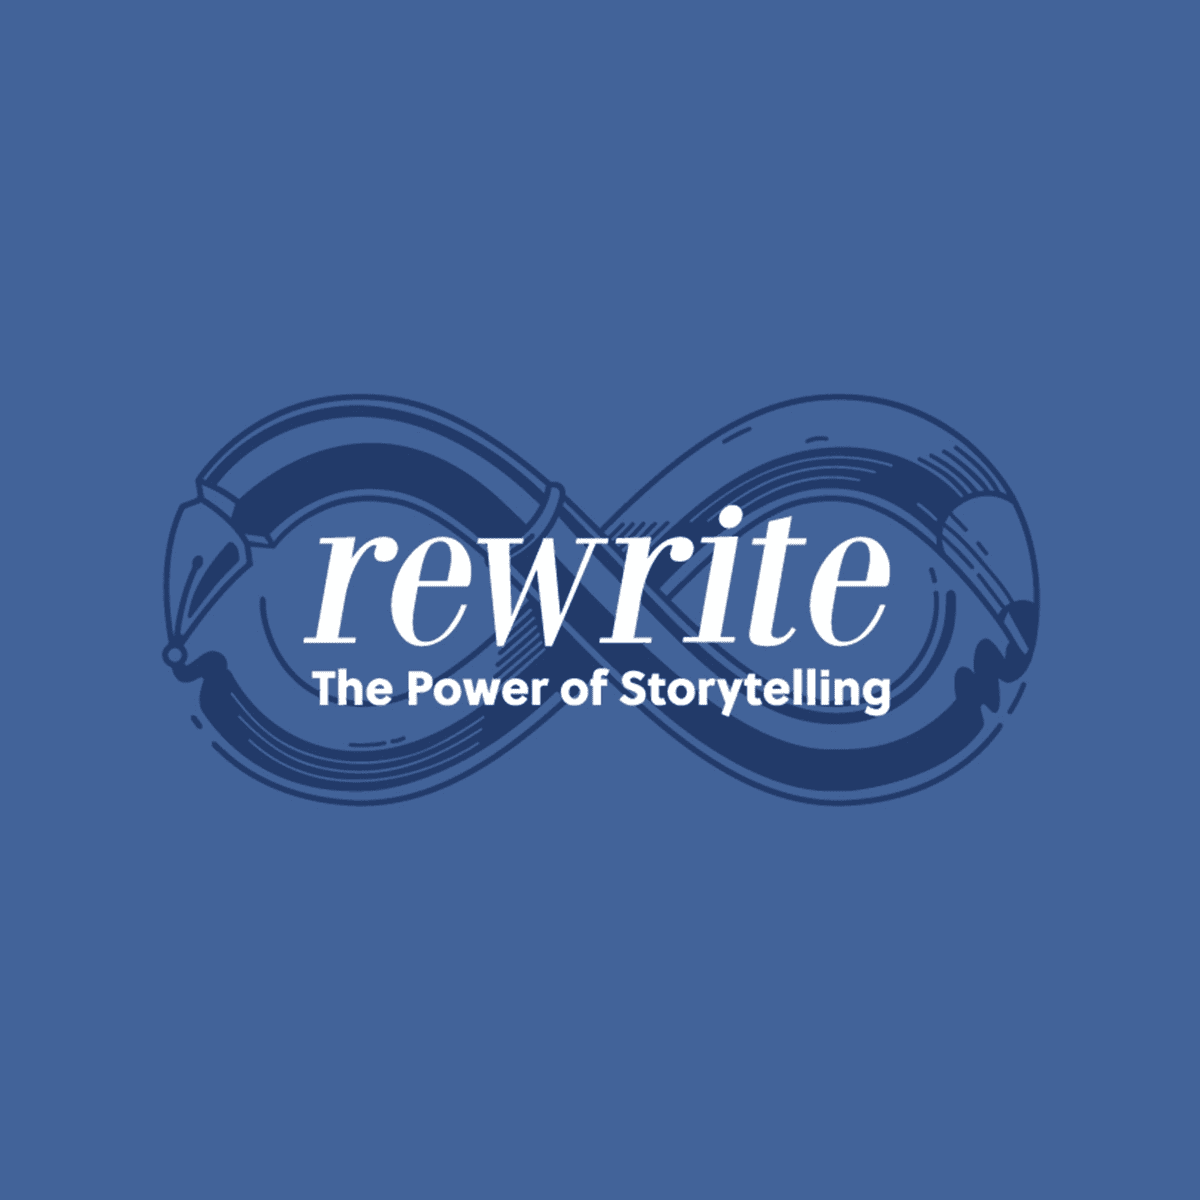 The Power of Storytelling 2018: Rewrite